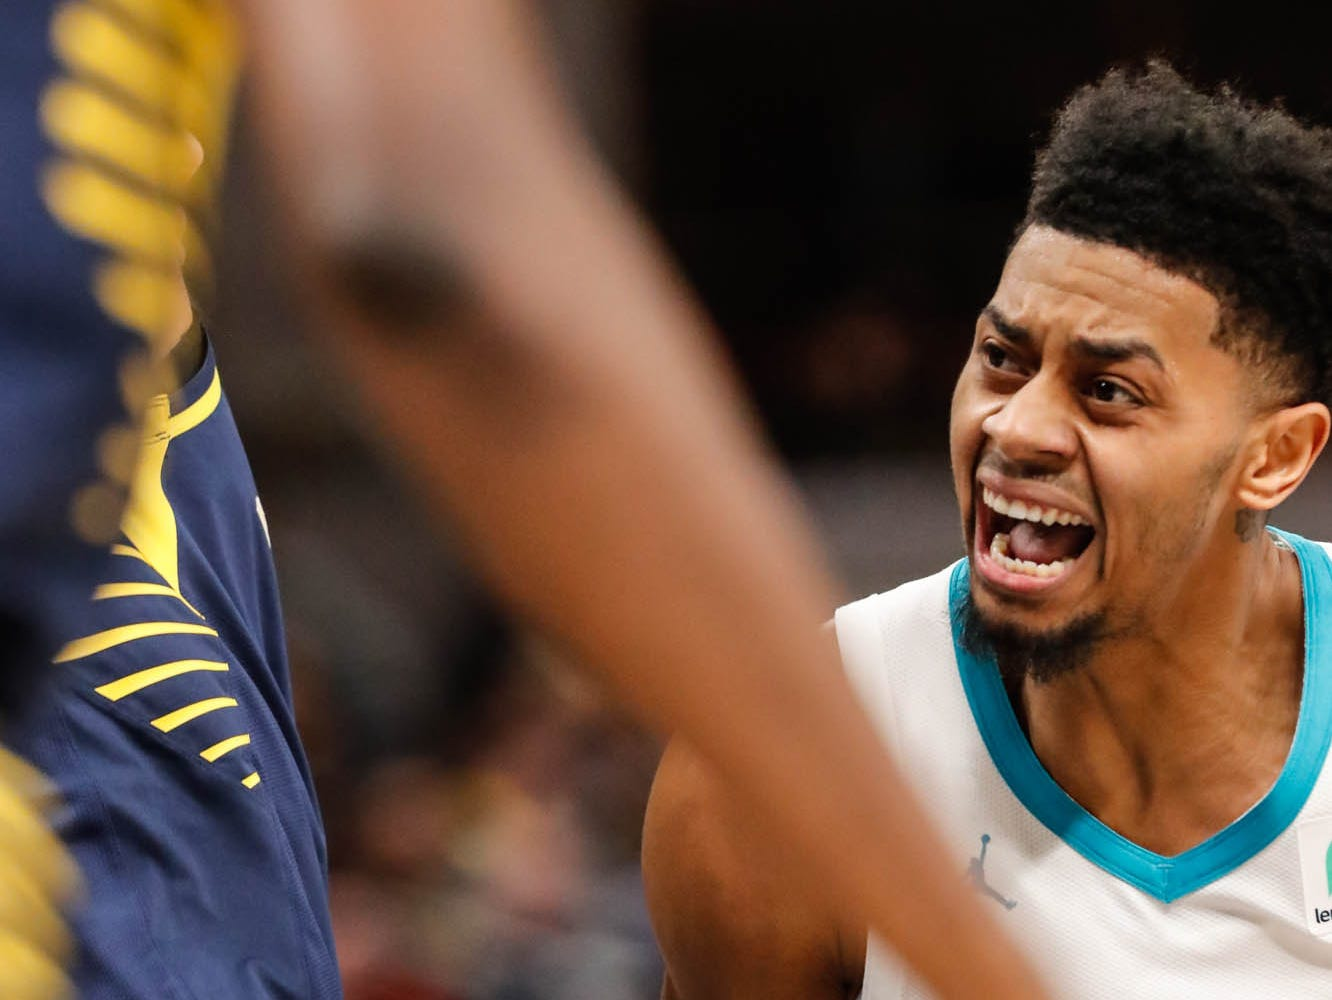 Charlotte Hornets guard Jeremy Lamb (3) drives through the Pacers defense during a game between the Pacers and Hornets at Bankers Life Fieldhouse on Sunday, Jan. 20, 2019.